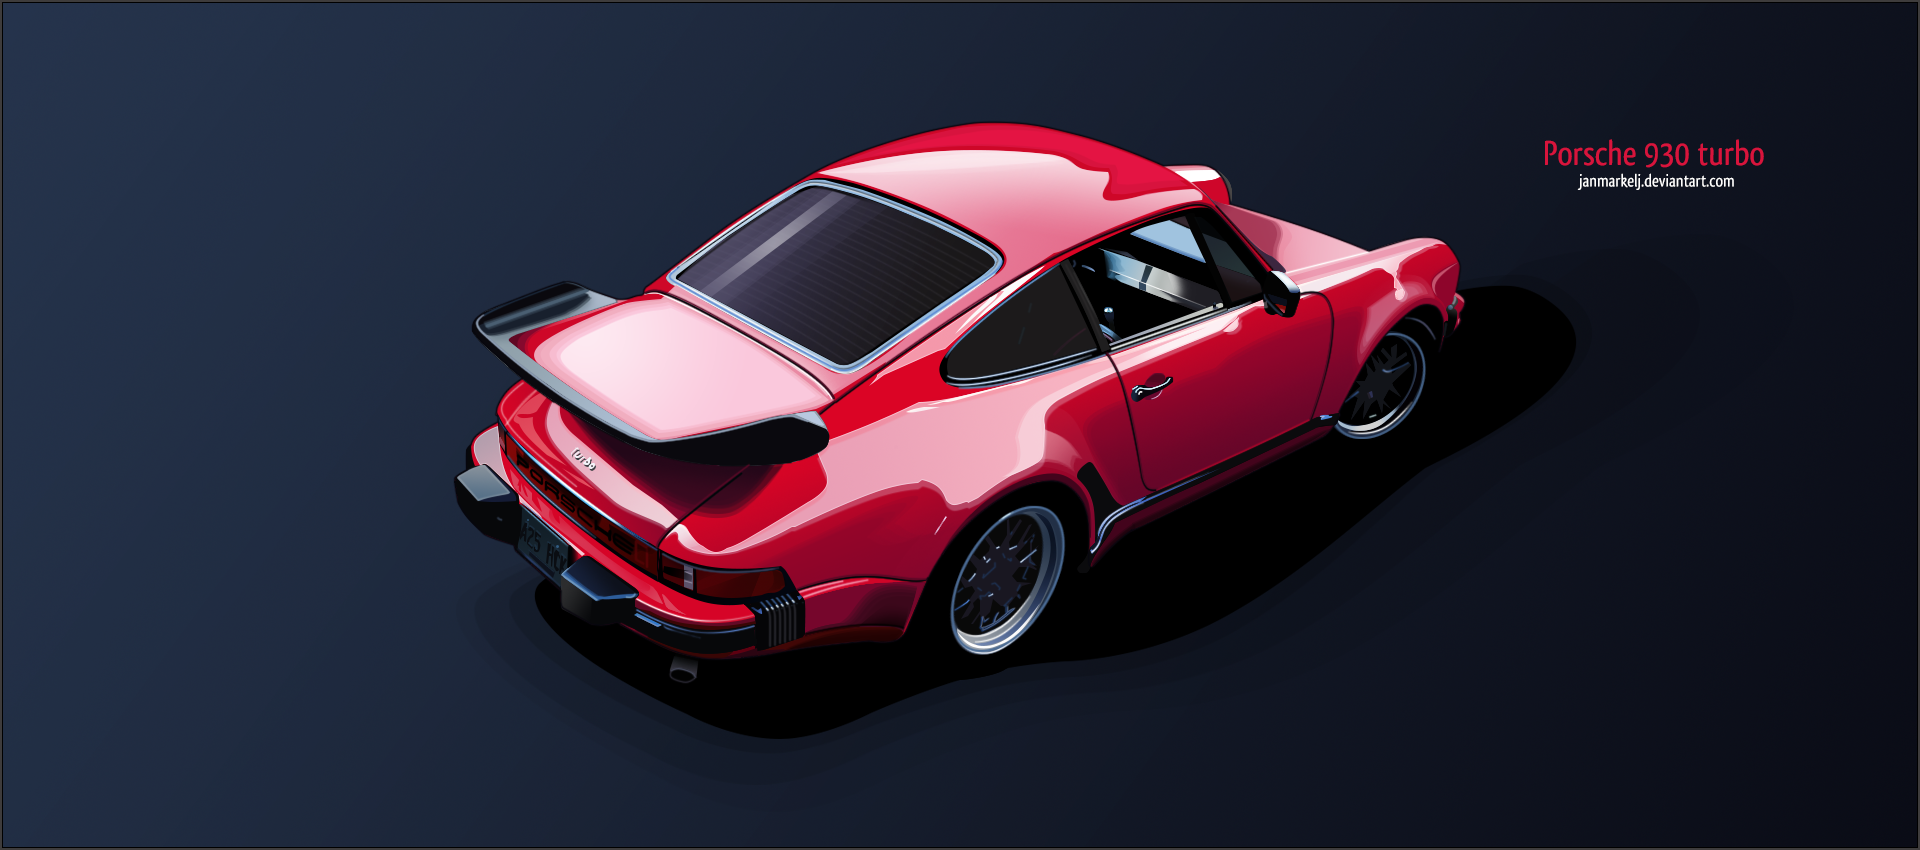 Porsche 930 Turbo by janmarkelj